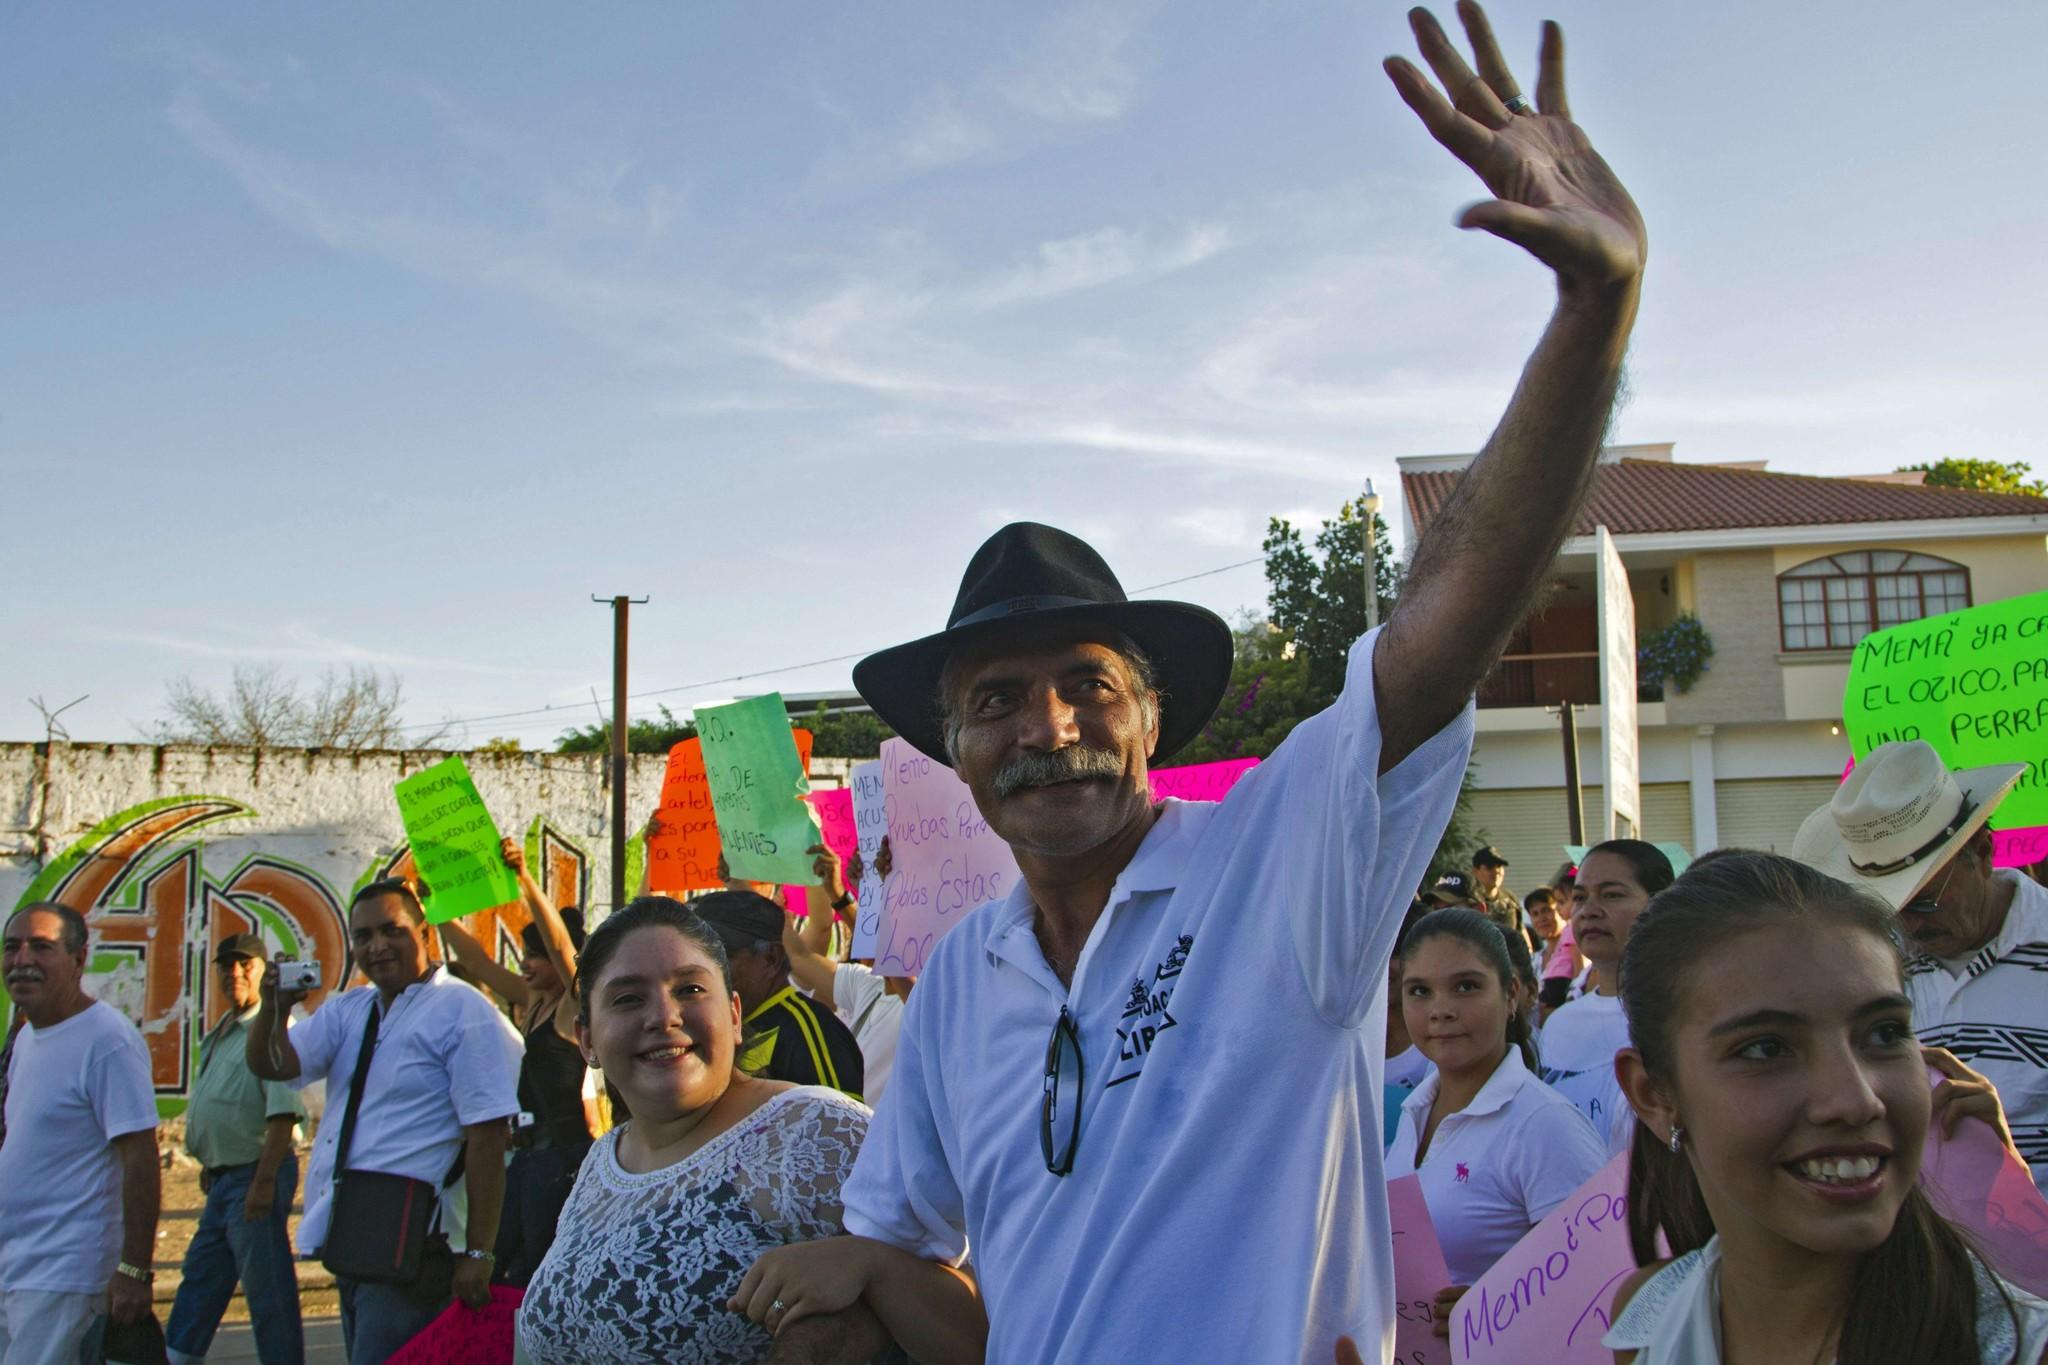 Jose Manuel Mireles, a leader of the Self-Protection Police, waves during a February march to celebrate the first anniversary of the groups of civilians who took up arms to fight the drug cartels in Michoacan state, Mexico.